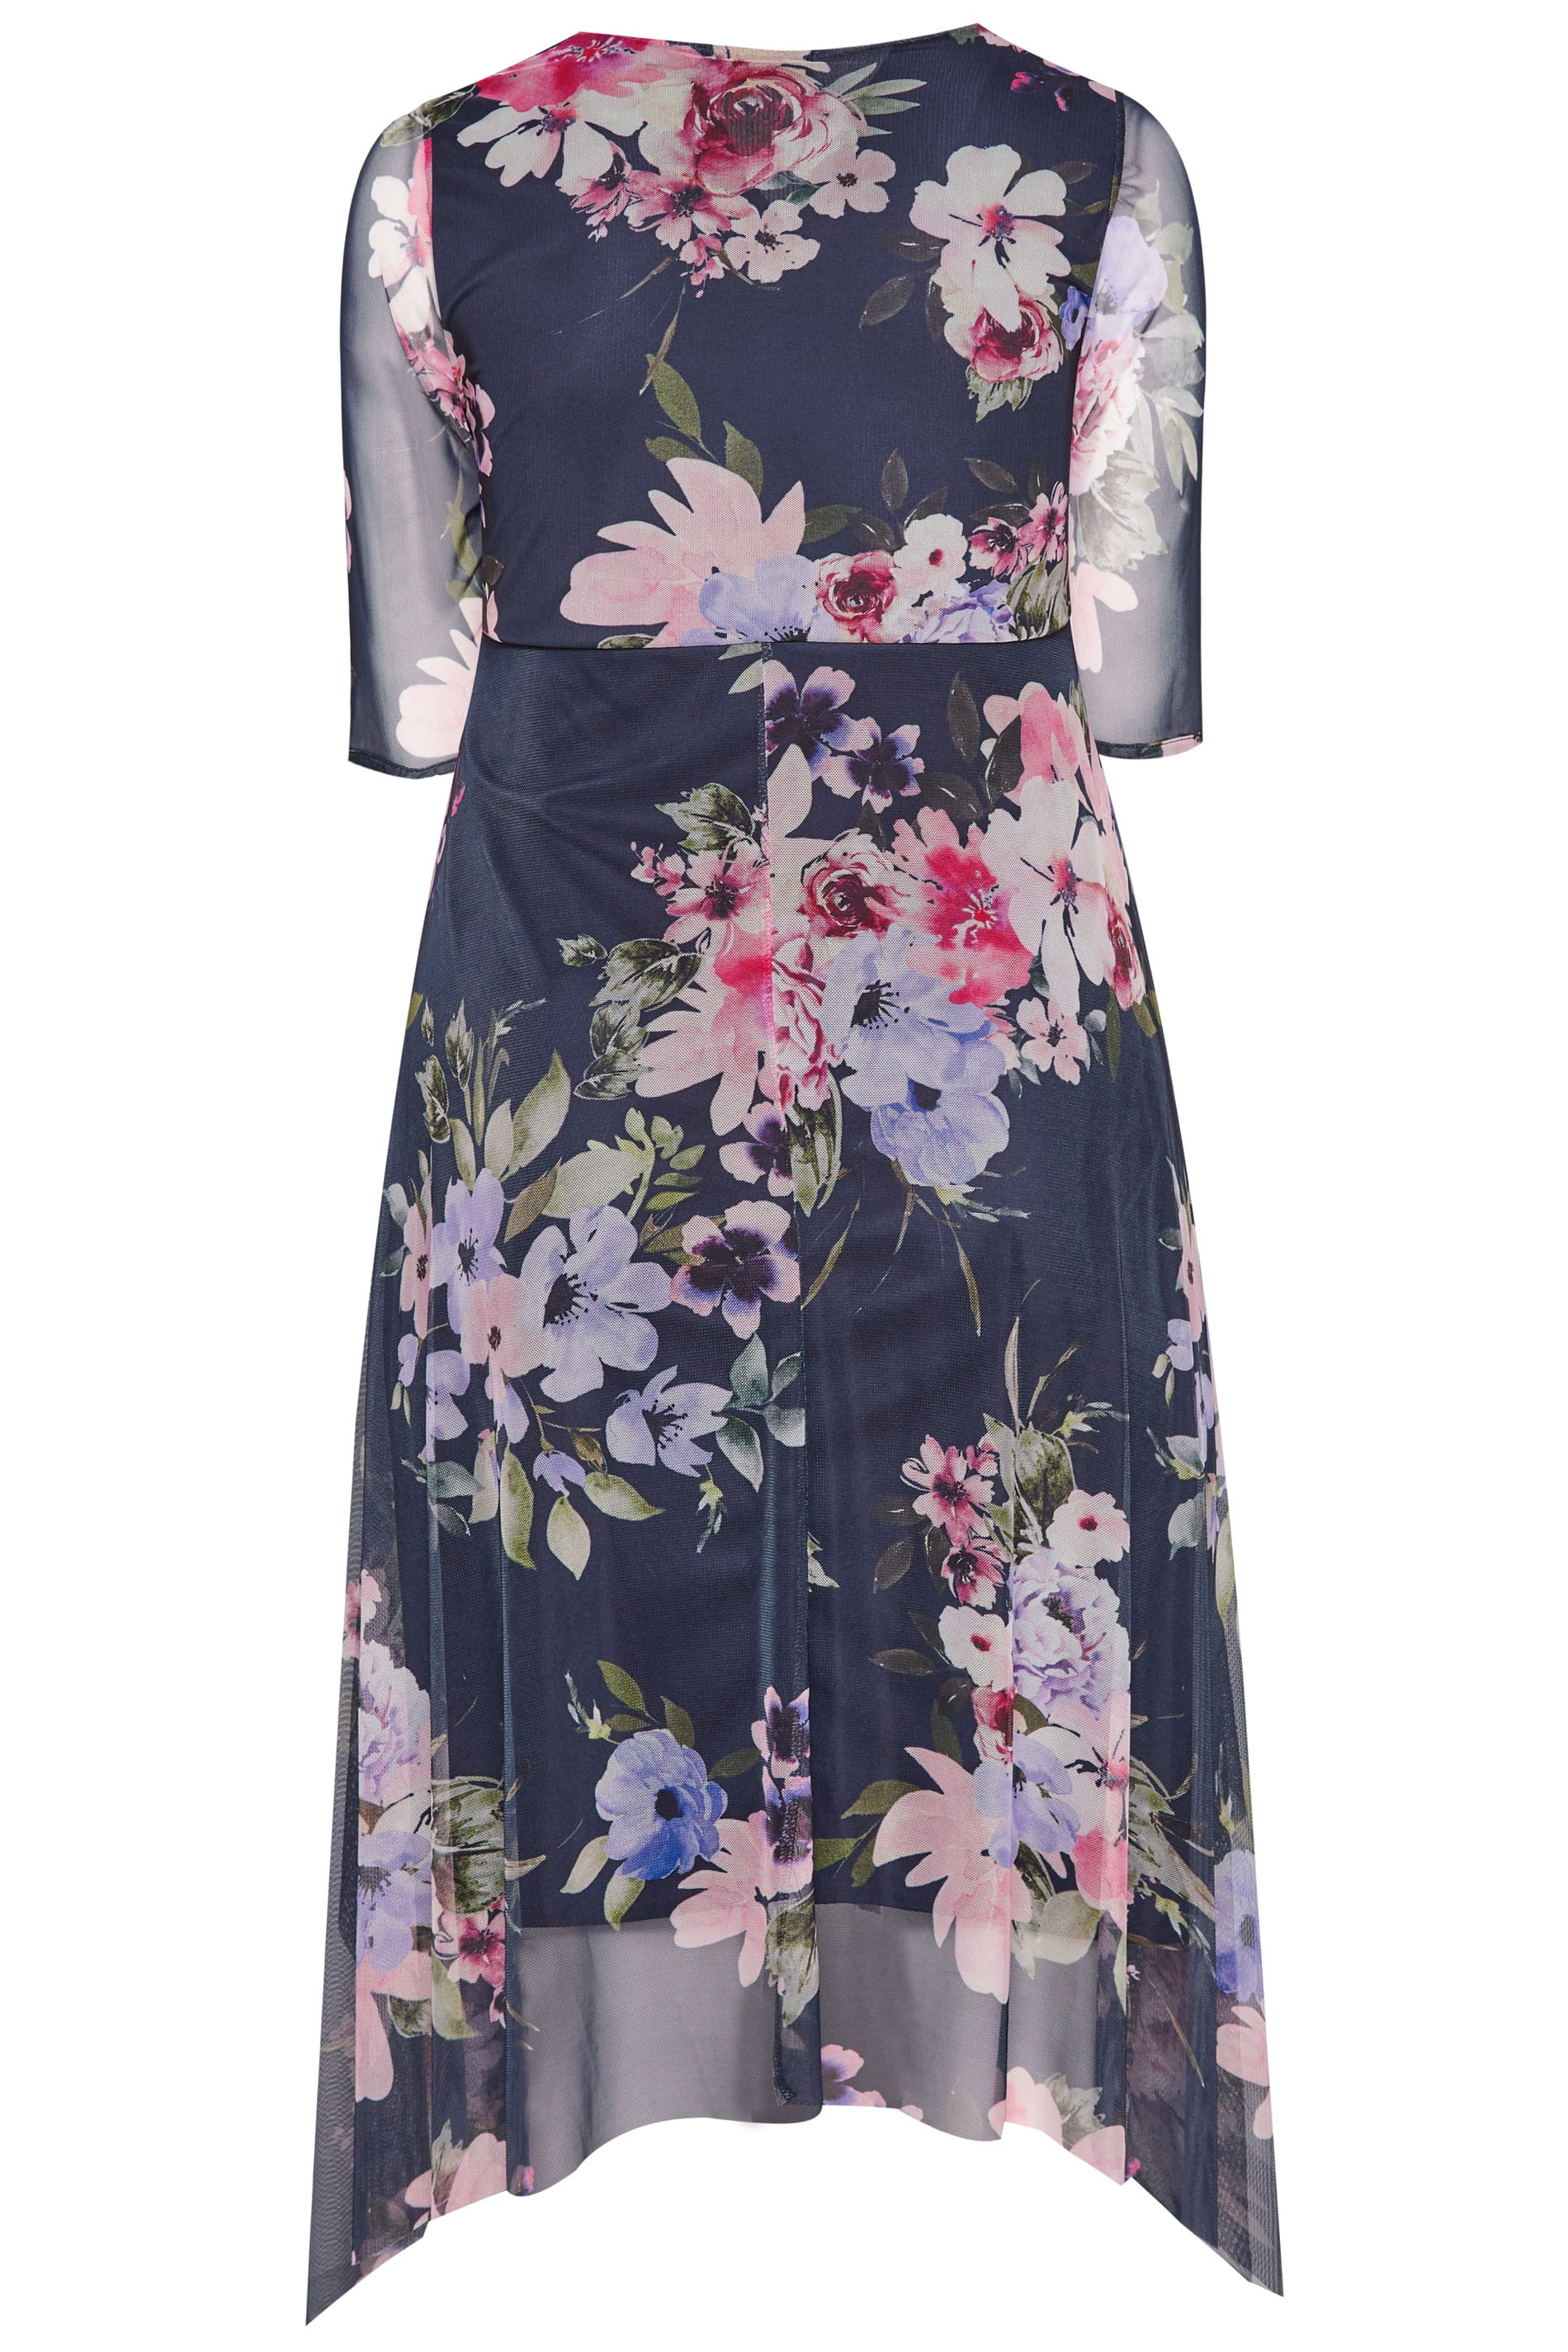 635759a4e35 YOURS LONDON Black Floral Mesh Midi Dress With Hanky Hem | Sizes 16 ...